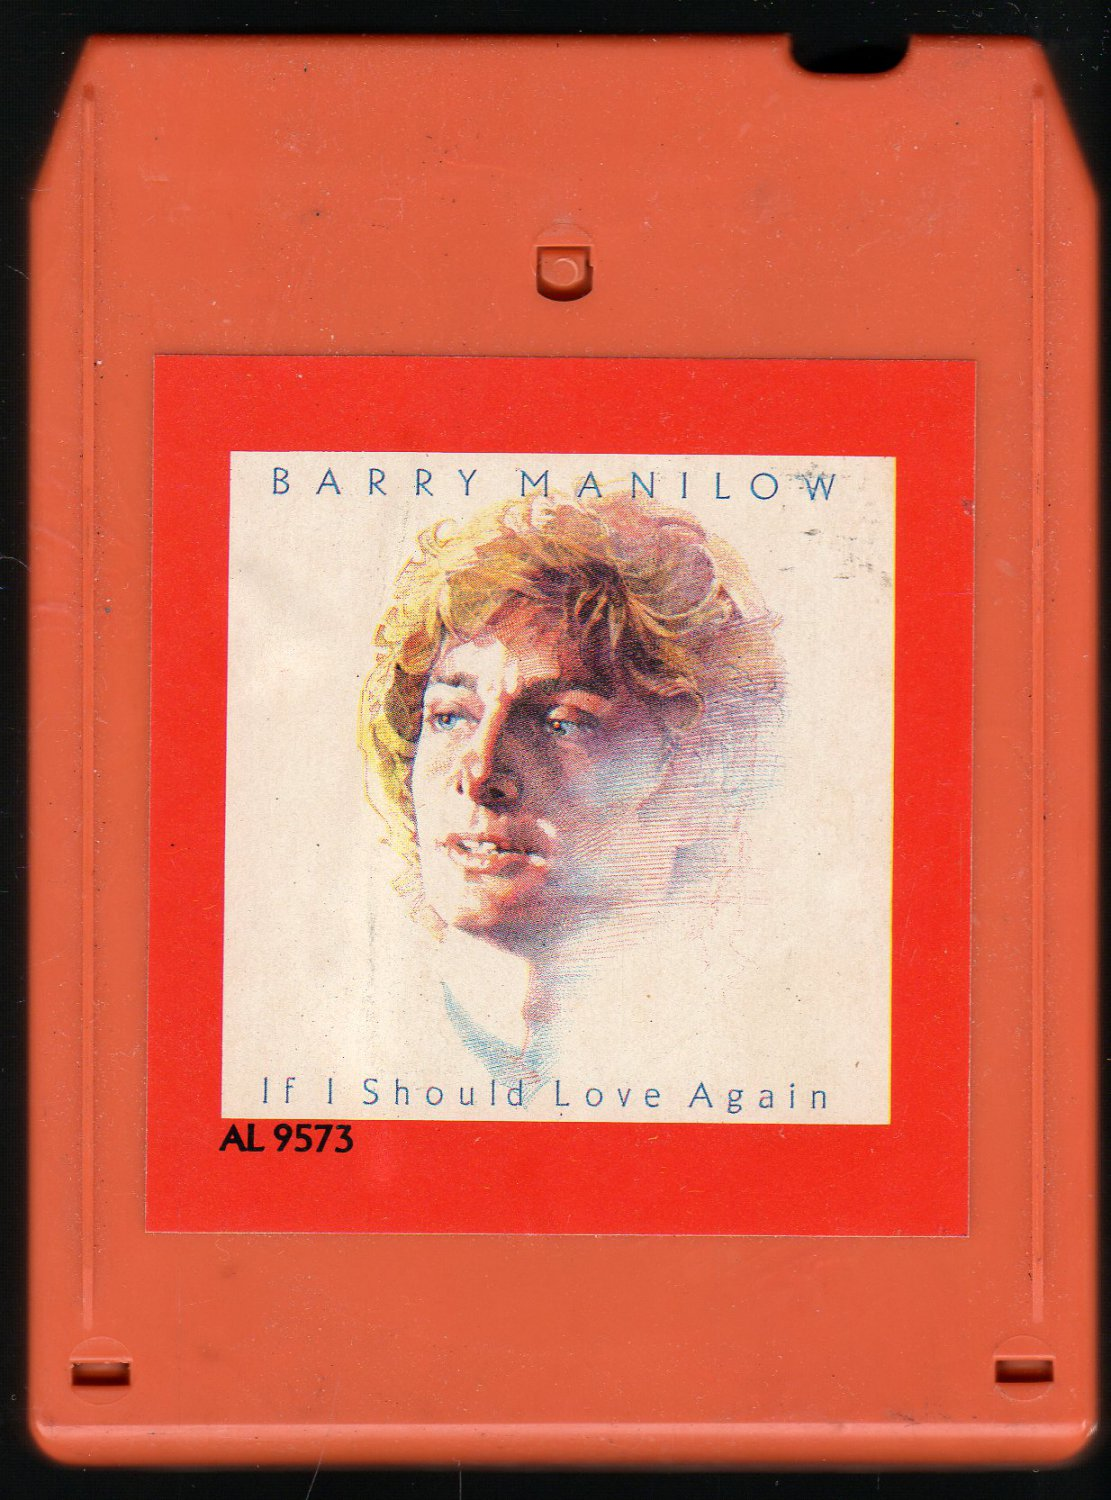 Barry Manilow - If I Should Love Again 1981 ARISTA A17C 8-track tape